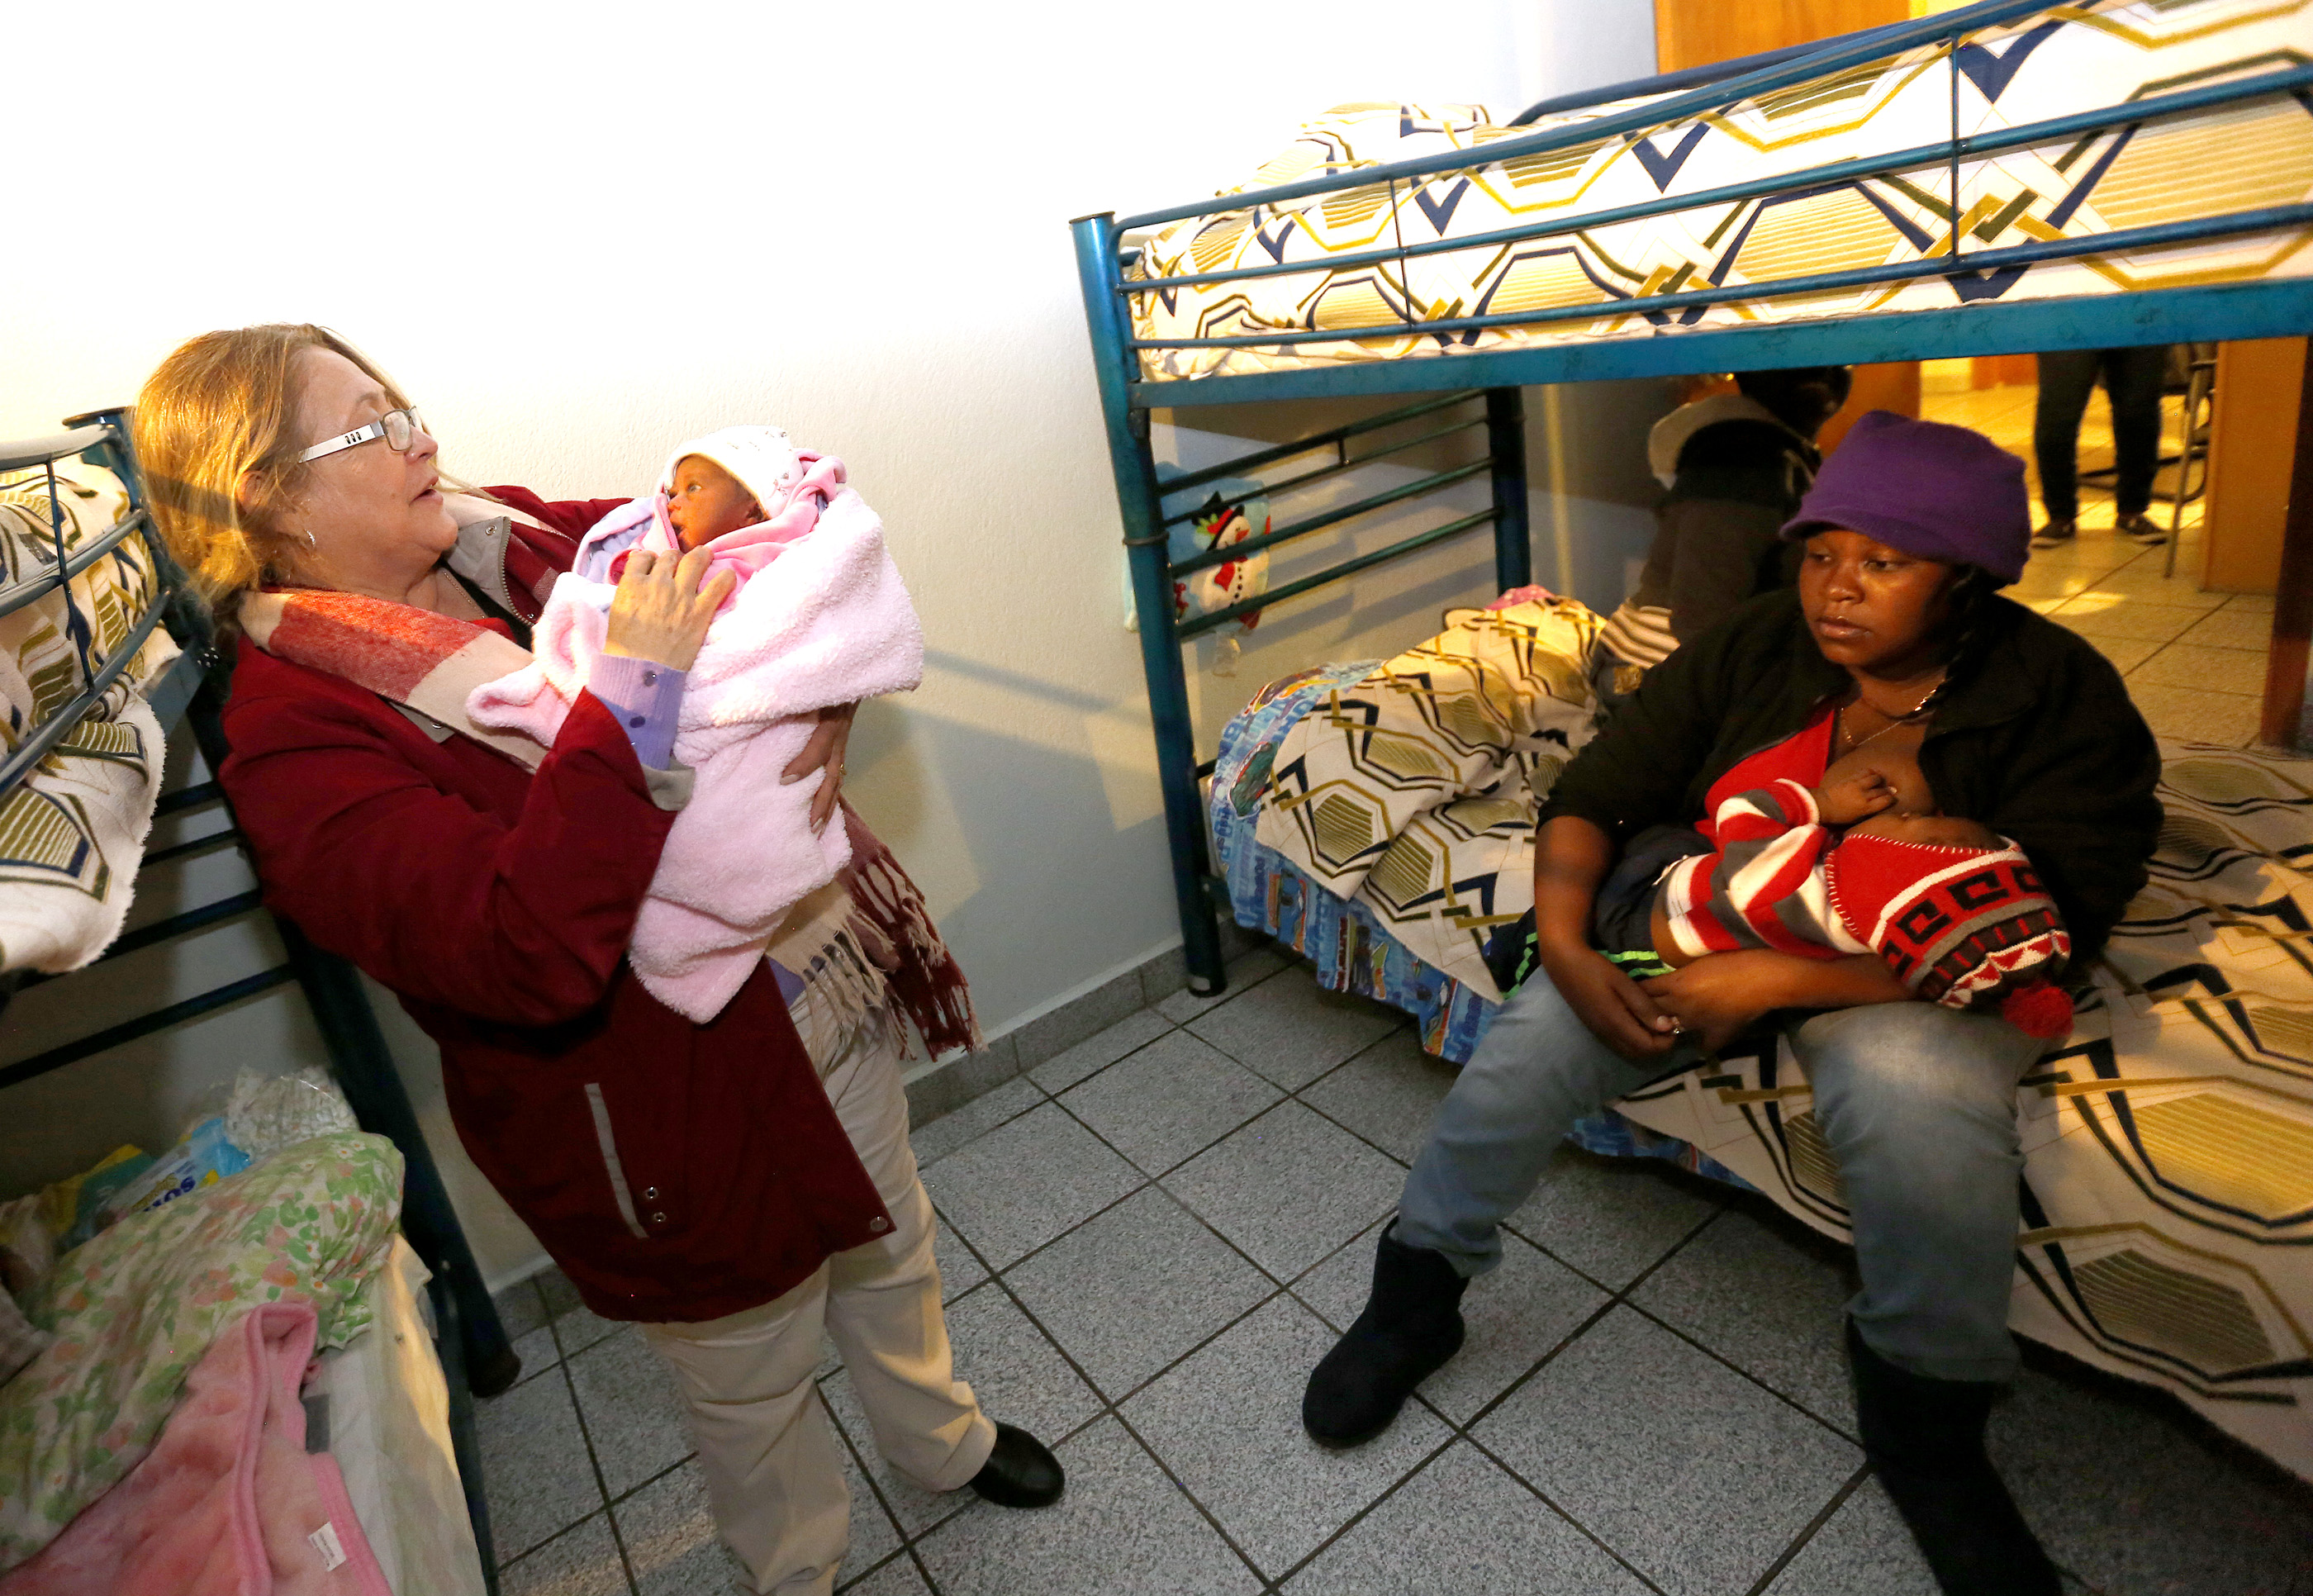 12/08/16/ TIJUANA/Social worker Maria Galvan holds new born Haitian refugee, at Centro Madre Assunta in Tijuana. An unprecedented arrival of Haitians and others seeking entry into the United States in recent weeks has sent Tijuanas migrant shelters scrambling to find beds, blankets, food and other necessities to serve this increase of people awaiting processing by U.S. authorities. (Photo Aurelia Ventura/ La Opinion)